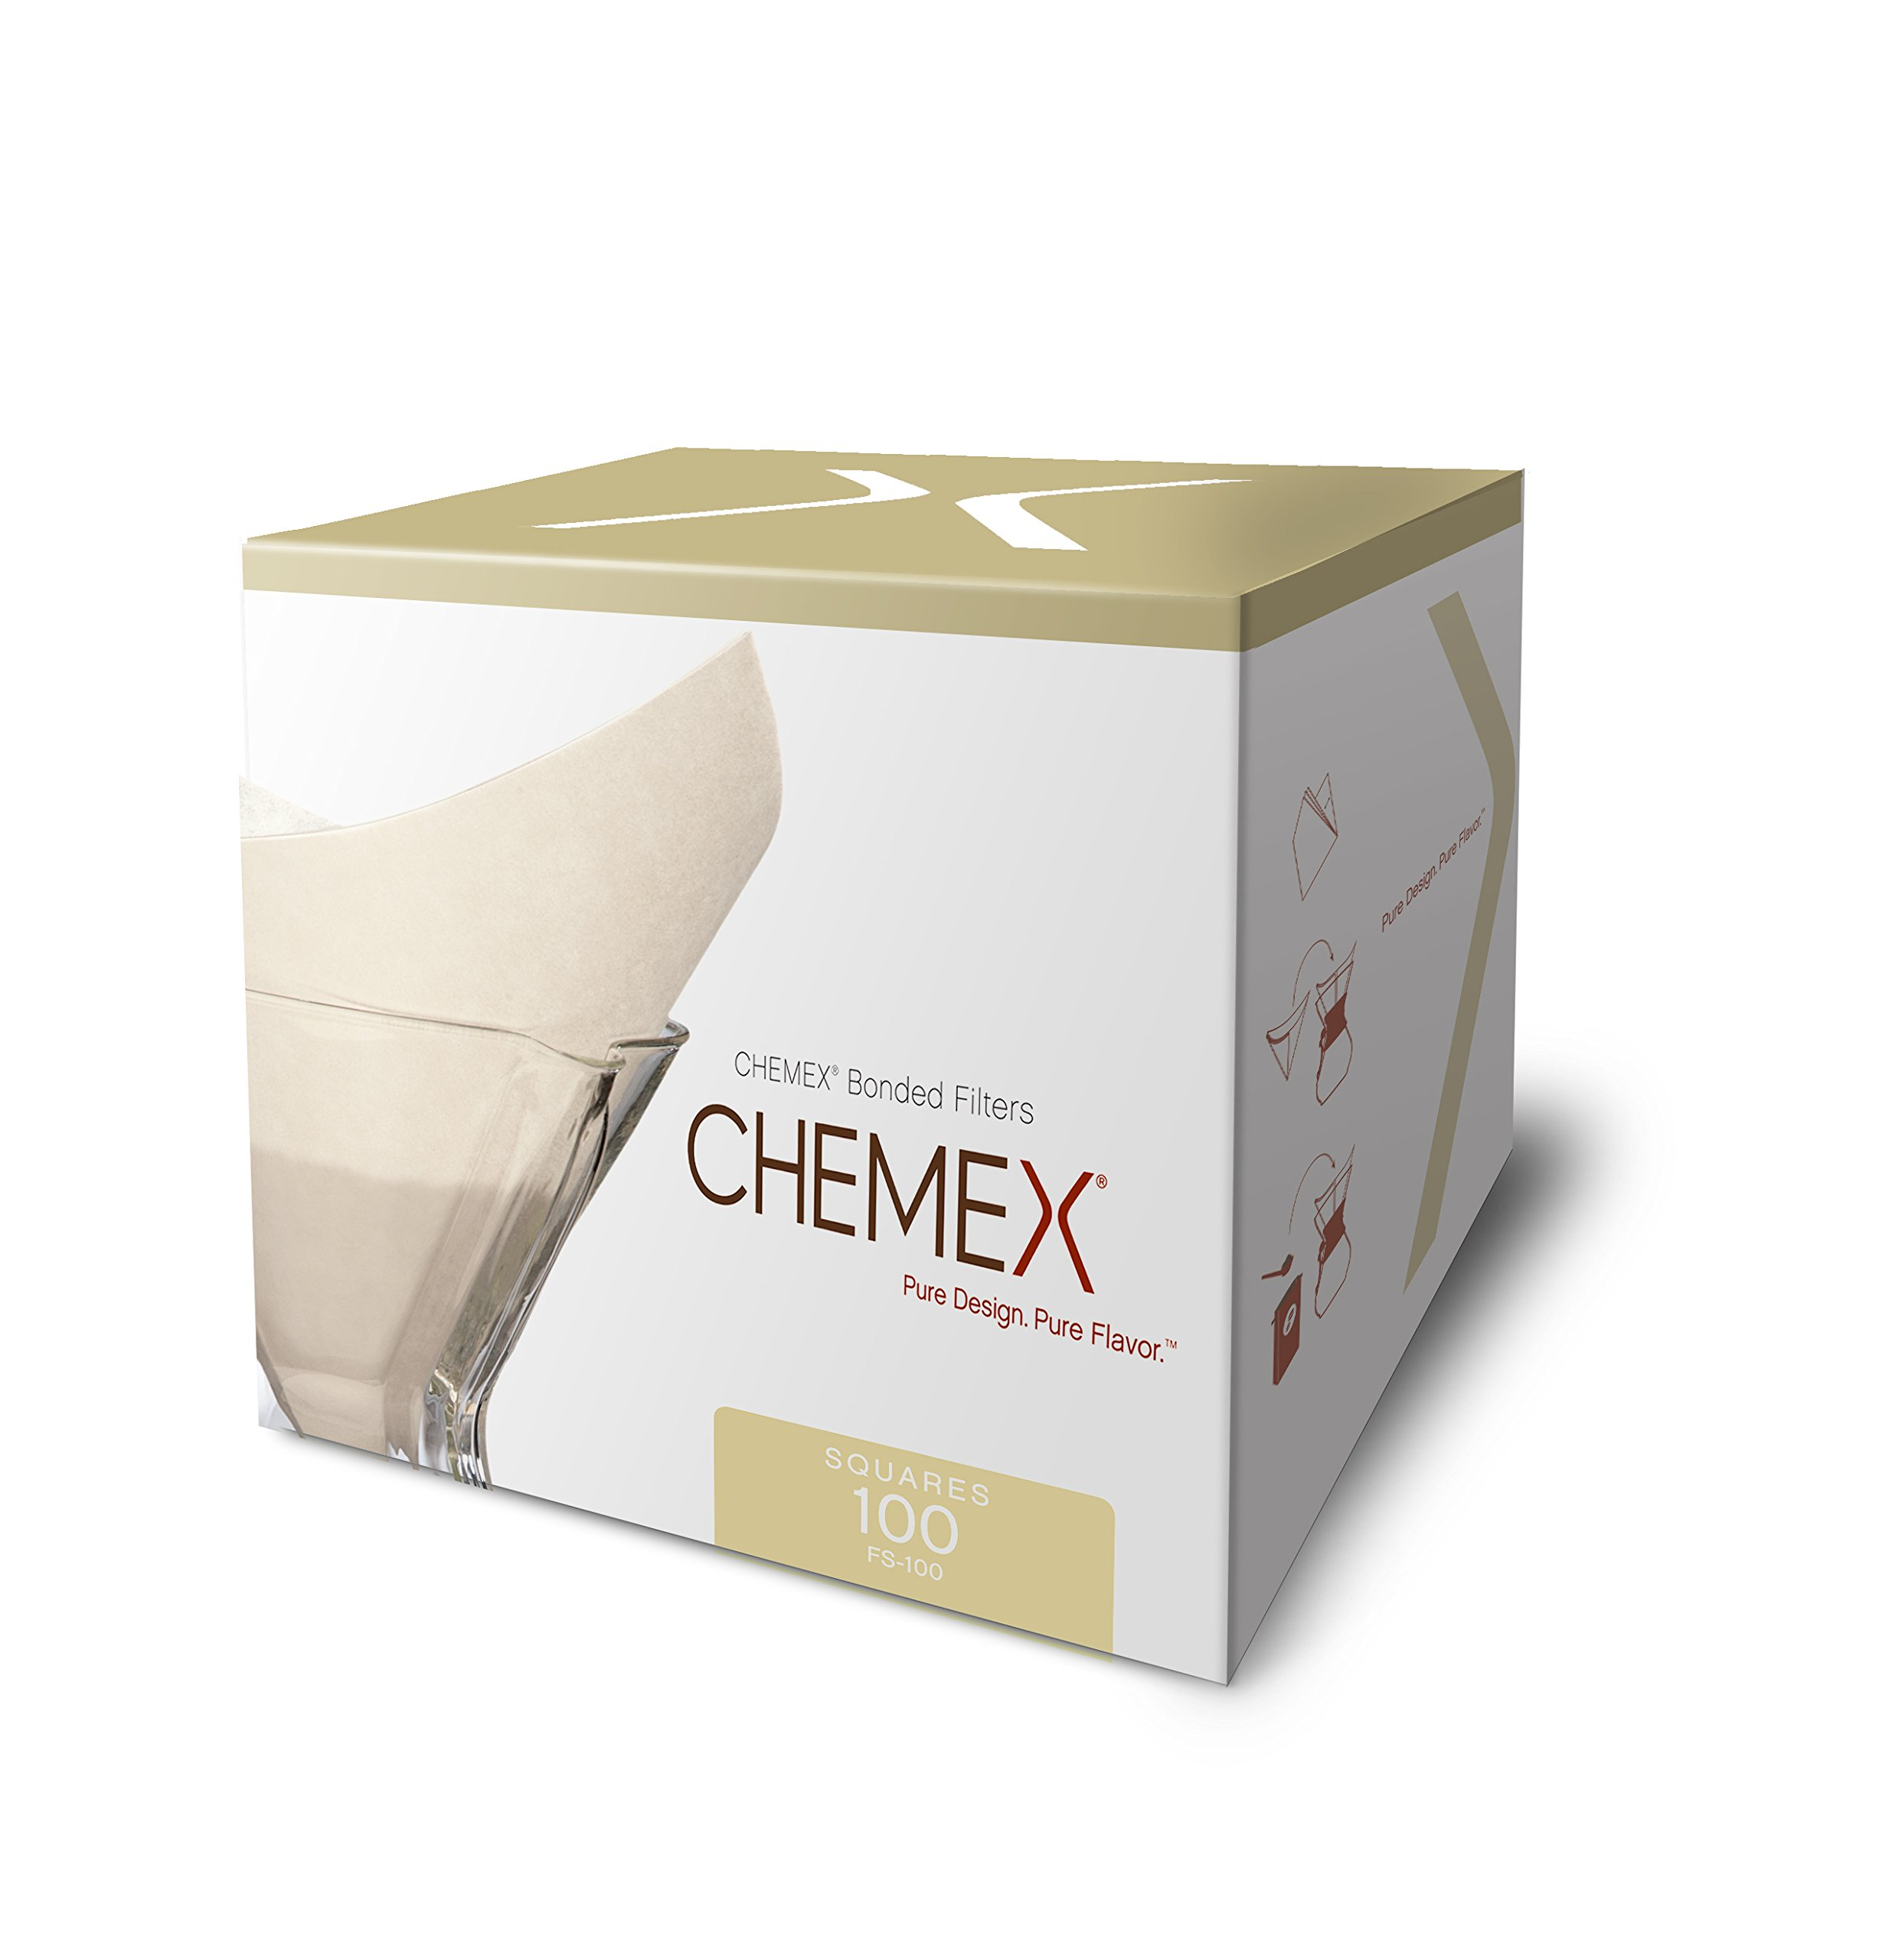 Chemex Classic Coffee Filters, Squares, 100 ct - Exclusive Packaging by Chemex